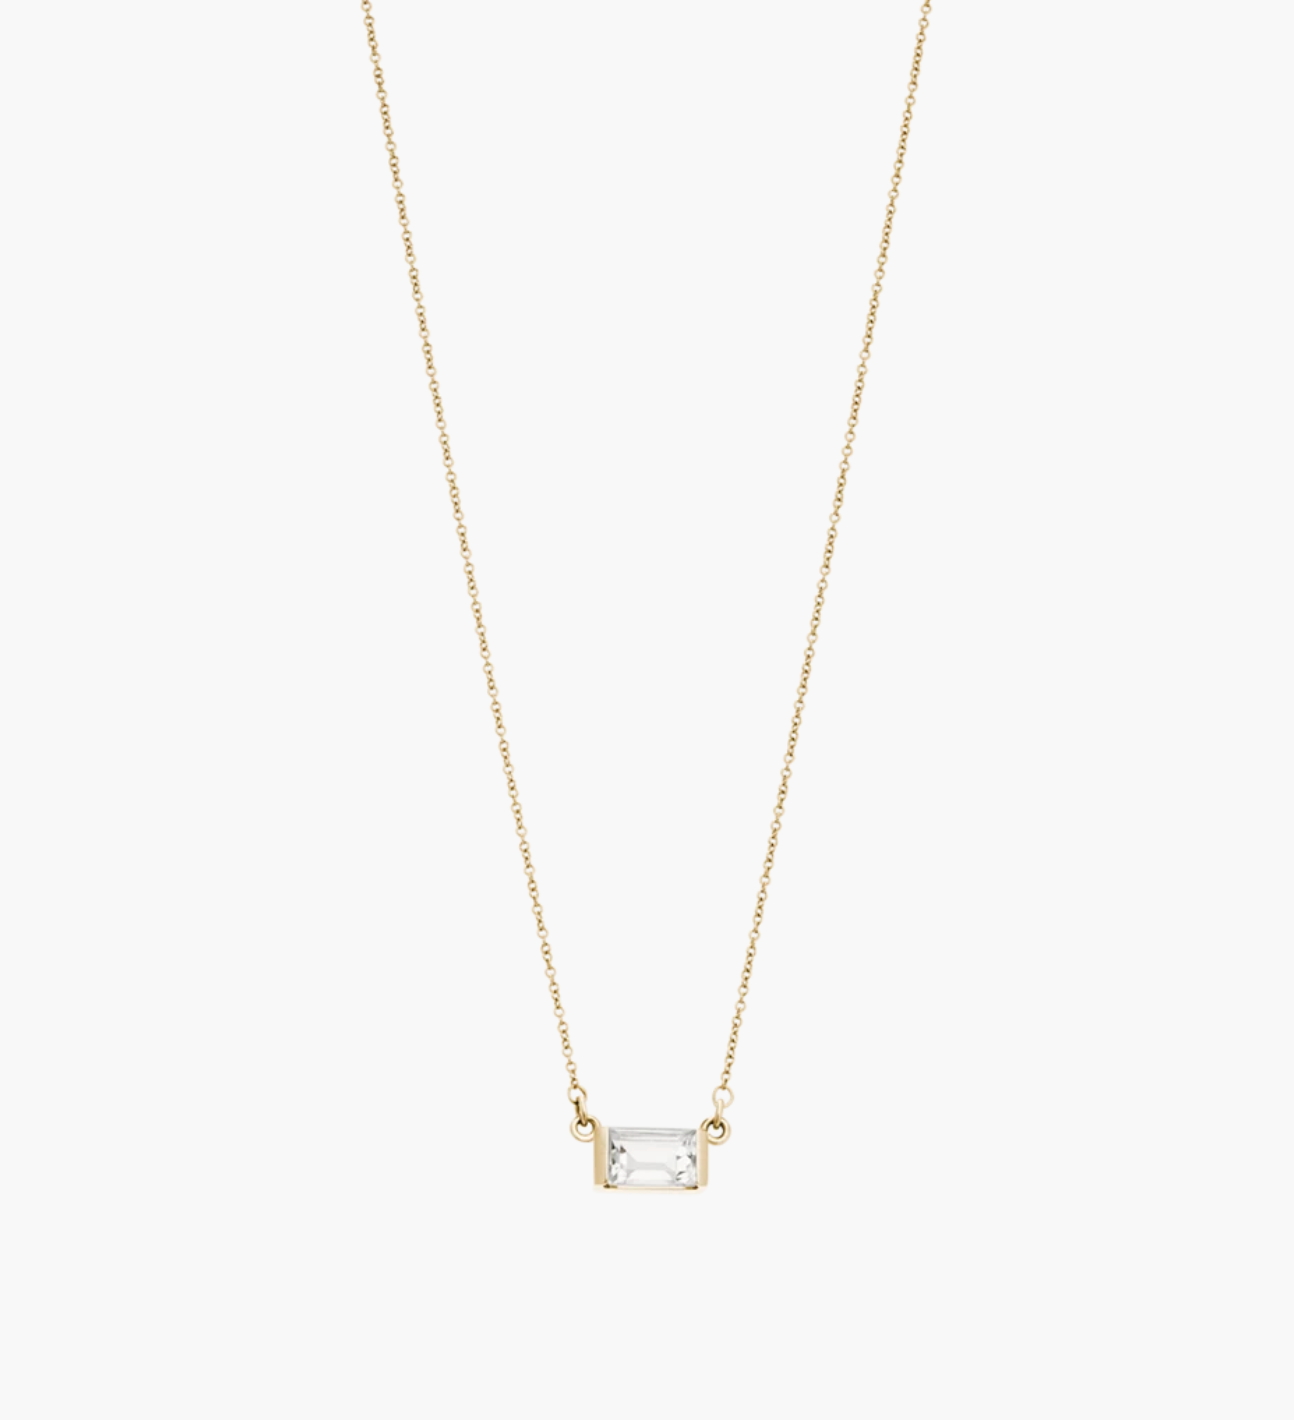 Kirstin Ash Baguette Necklace - GOLD White Topaz